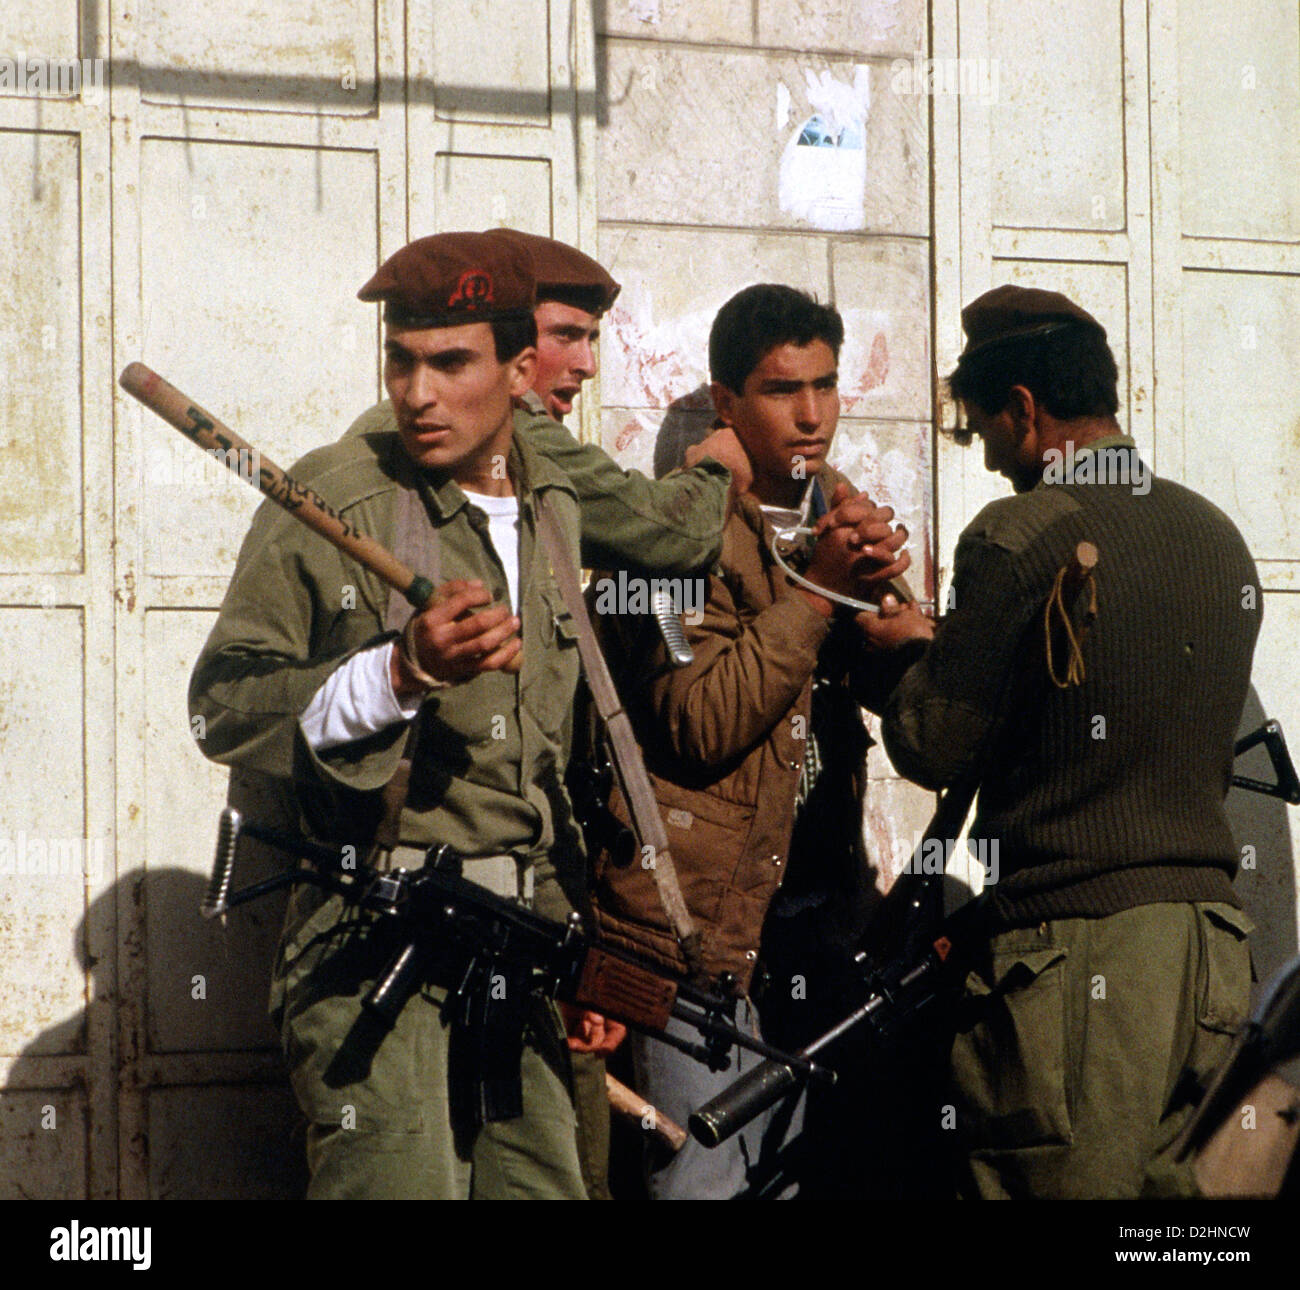 Palestinian youth being arrested in the West Bank town of Ramallah by the Israeli Defense Force at the start of - Stock Image